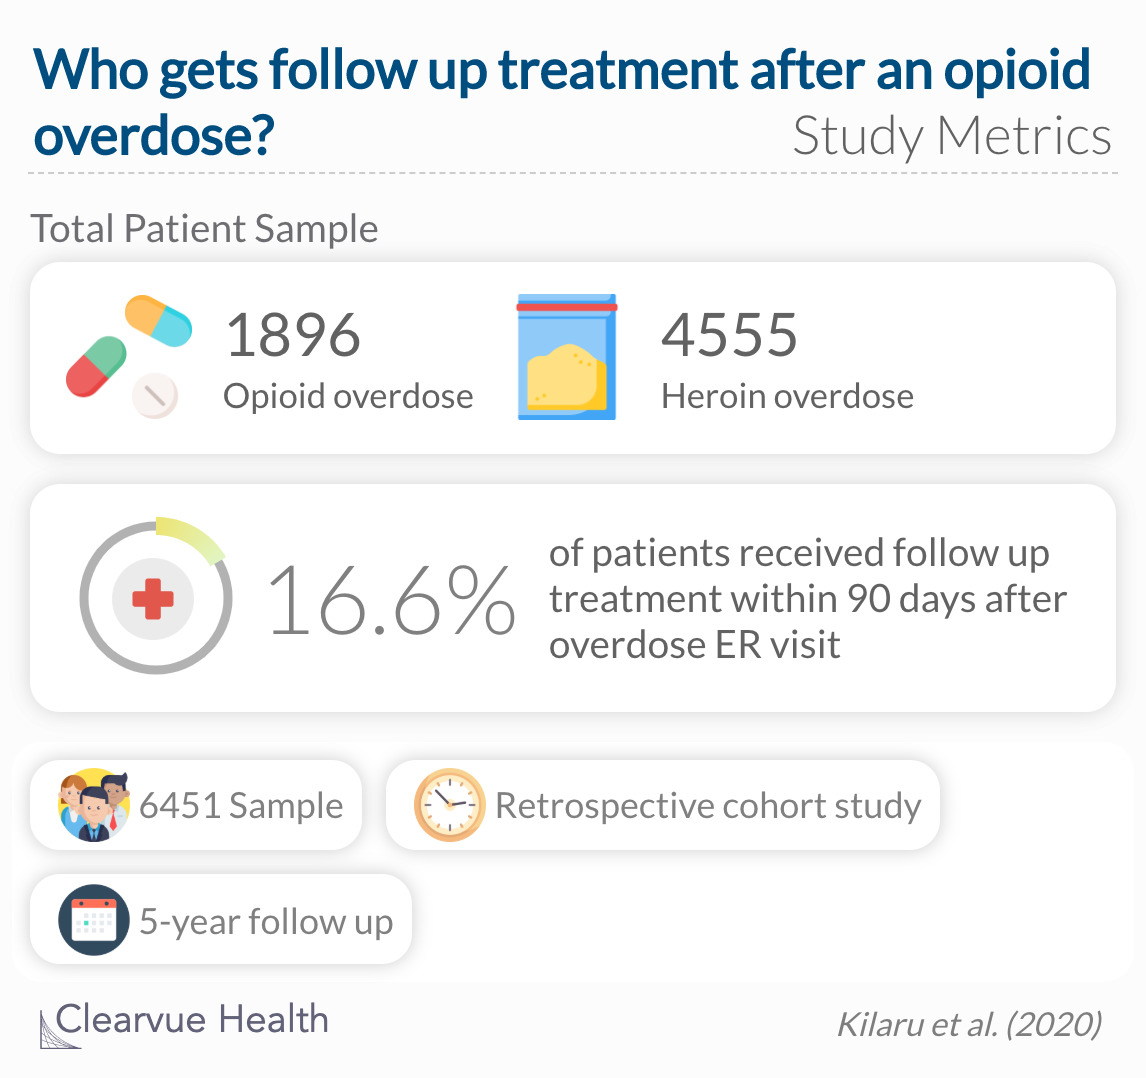 For all patients in the study cohort, 16.6% individuals obtained follow-up treatment in the 90 days following overdose.